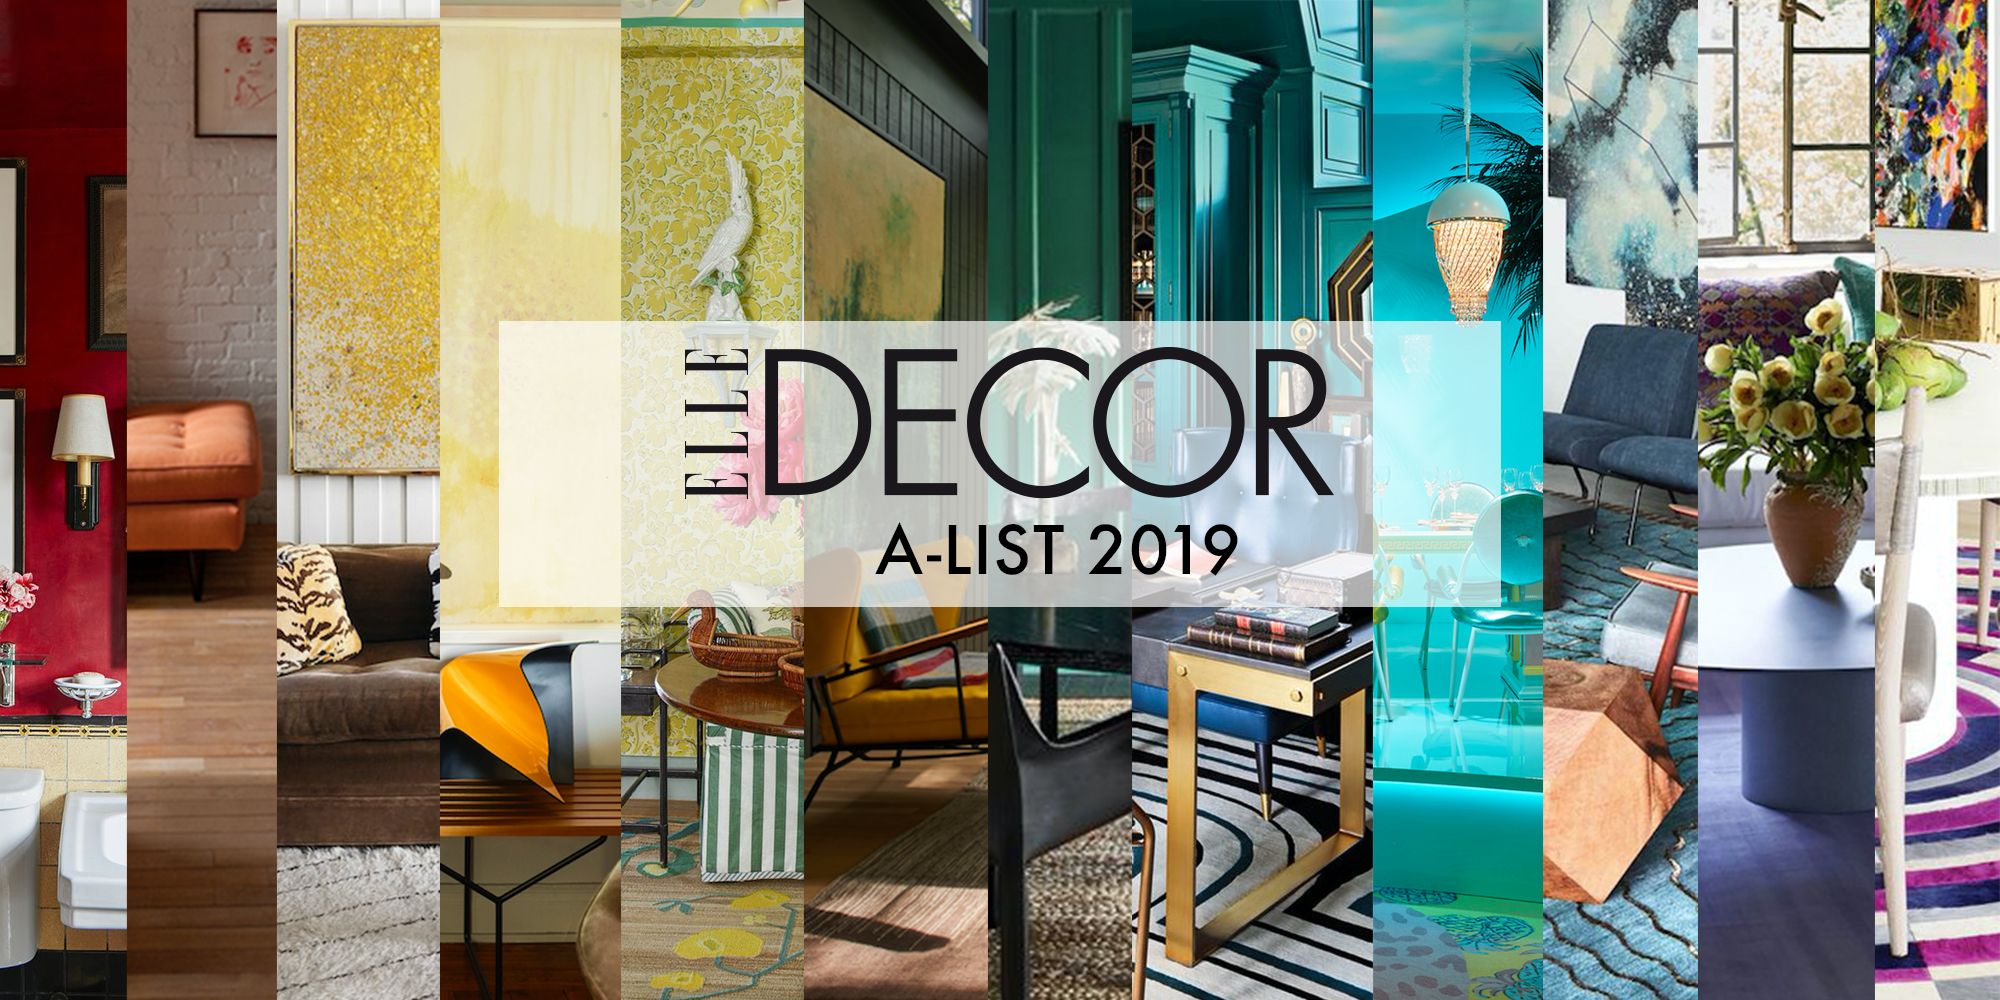 fabric interiors new york best interior designers The 2019 A-List: 100+ of the Best Interior Designers From Milan to Miami